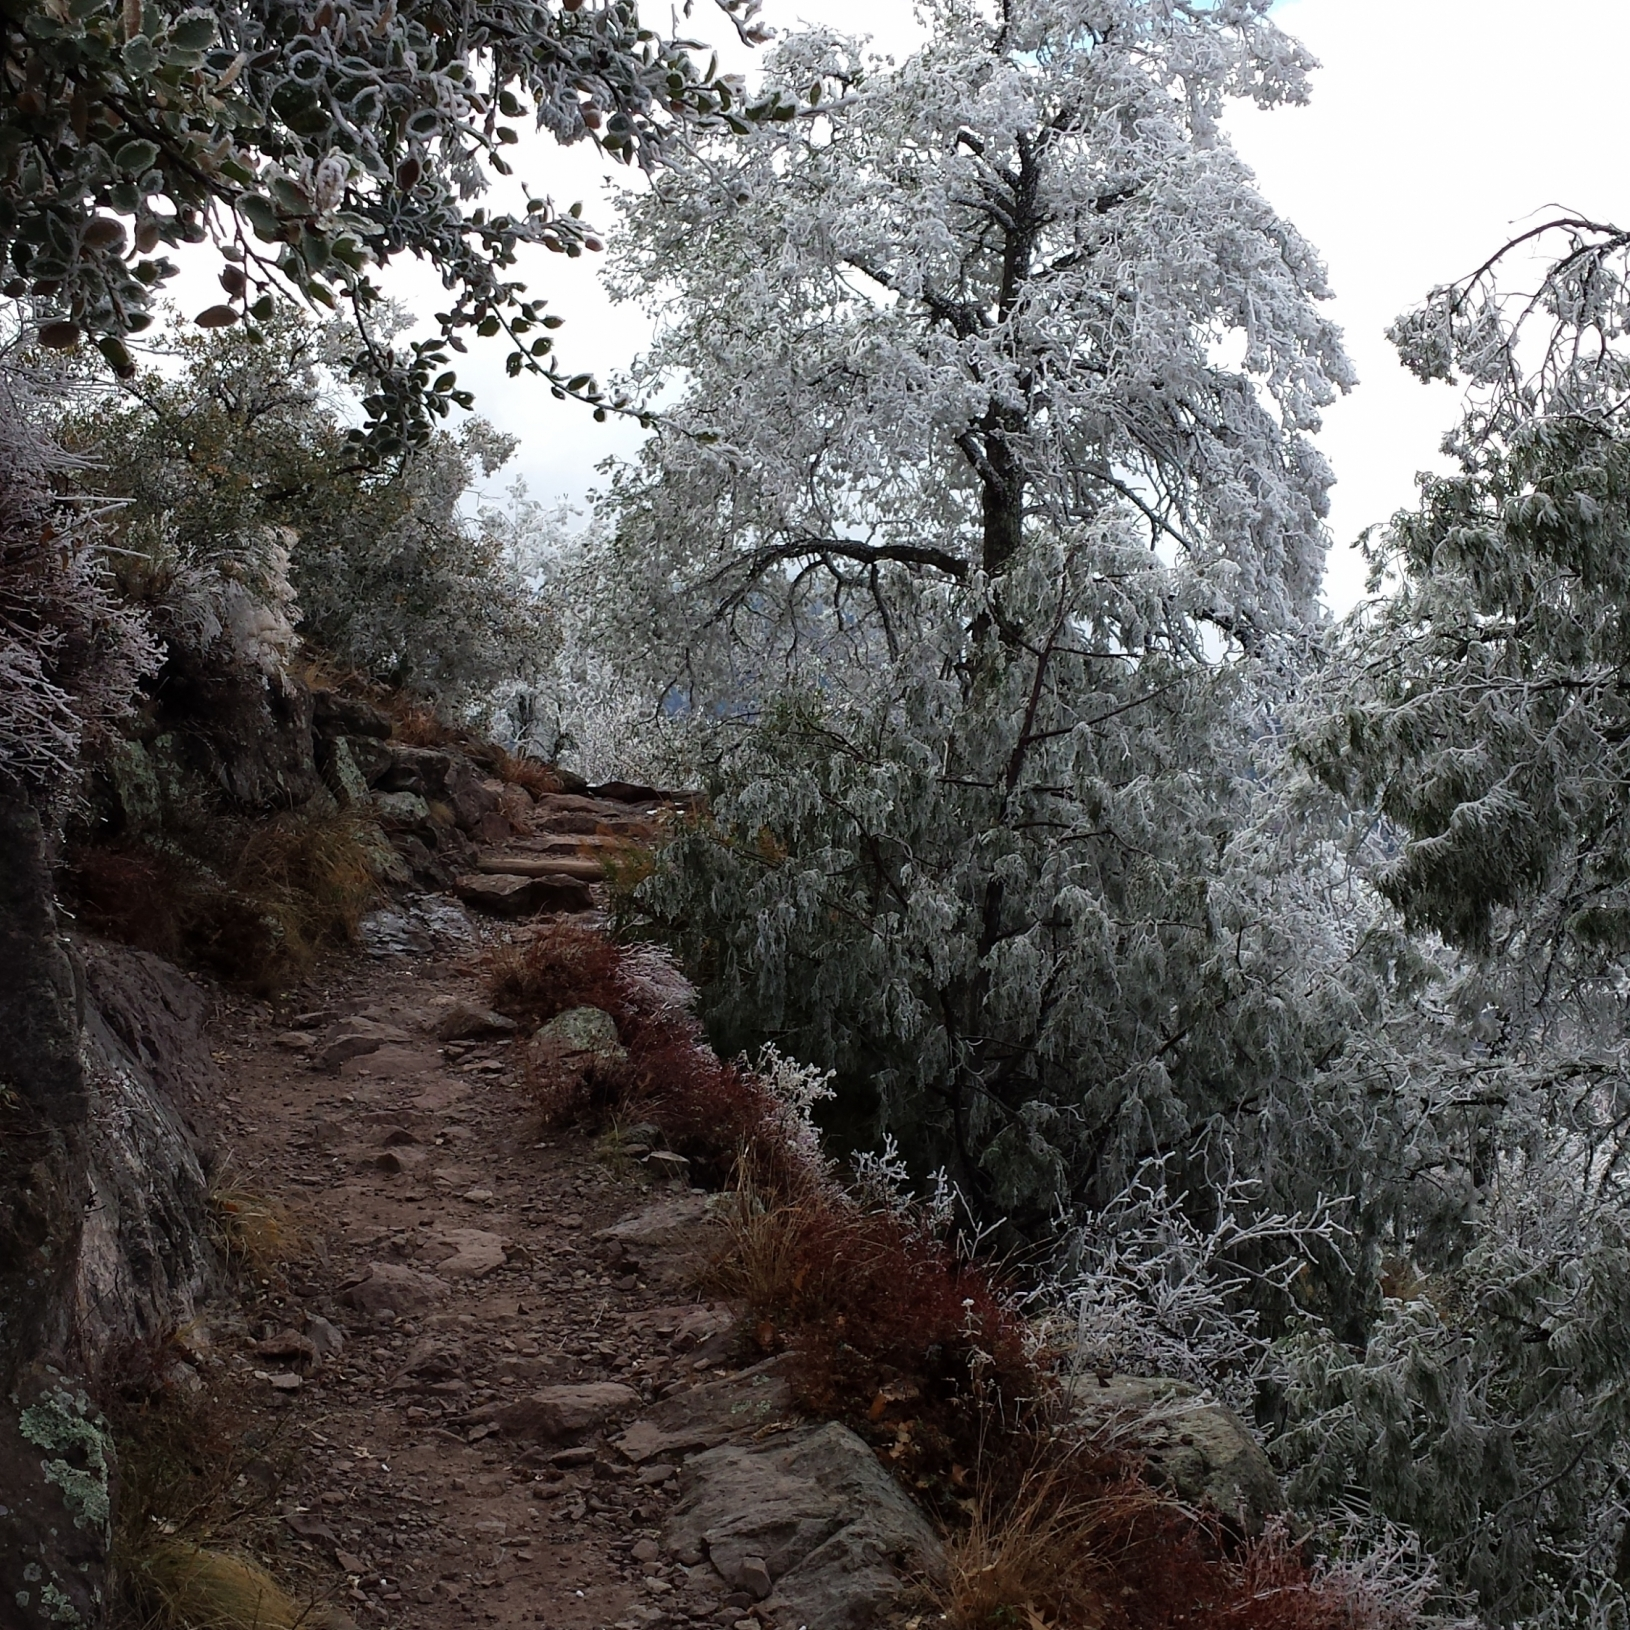 Snowy trail in the Chisos Mountains of Big Bend